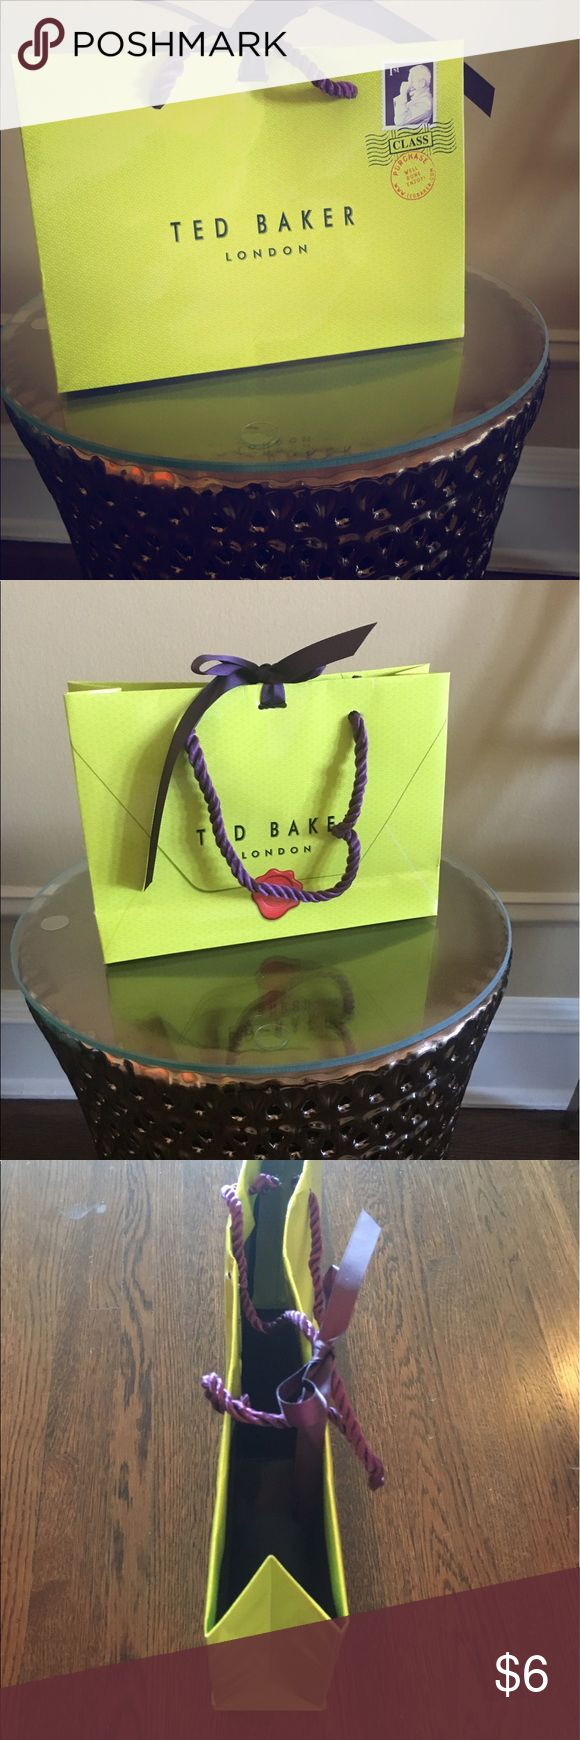 Ted Baker shopping bag Authentic, small Ted Baker shopping bag. Ted Baker London Bags